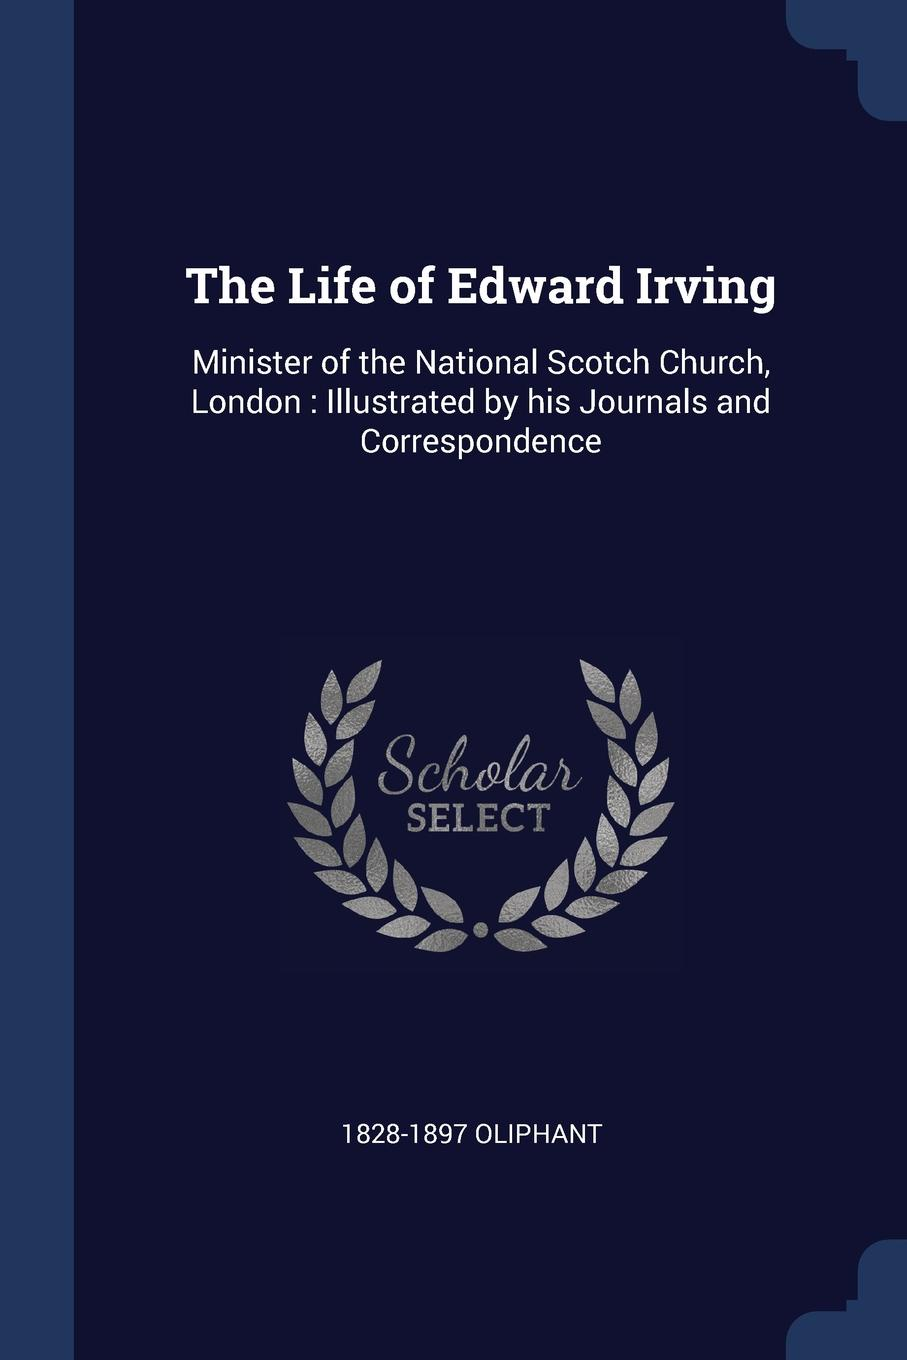 The Life of Edward Irving. Minister of the National Scotch Church, London : Illustrated by his Journals and Correspondence. 1828-1897 Oliphant